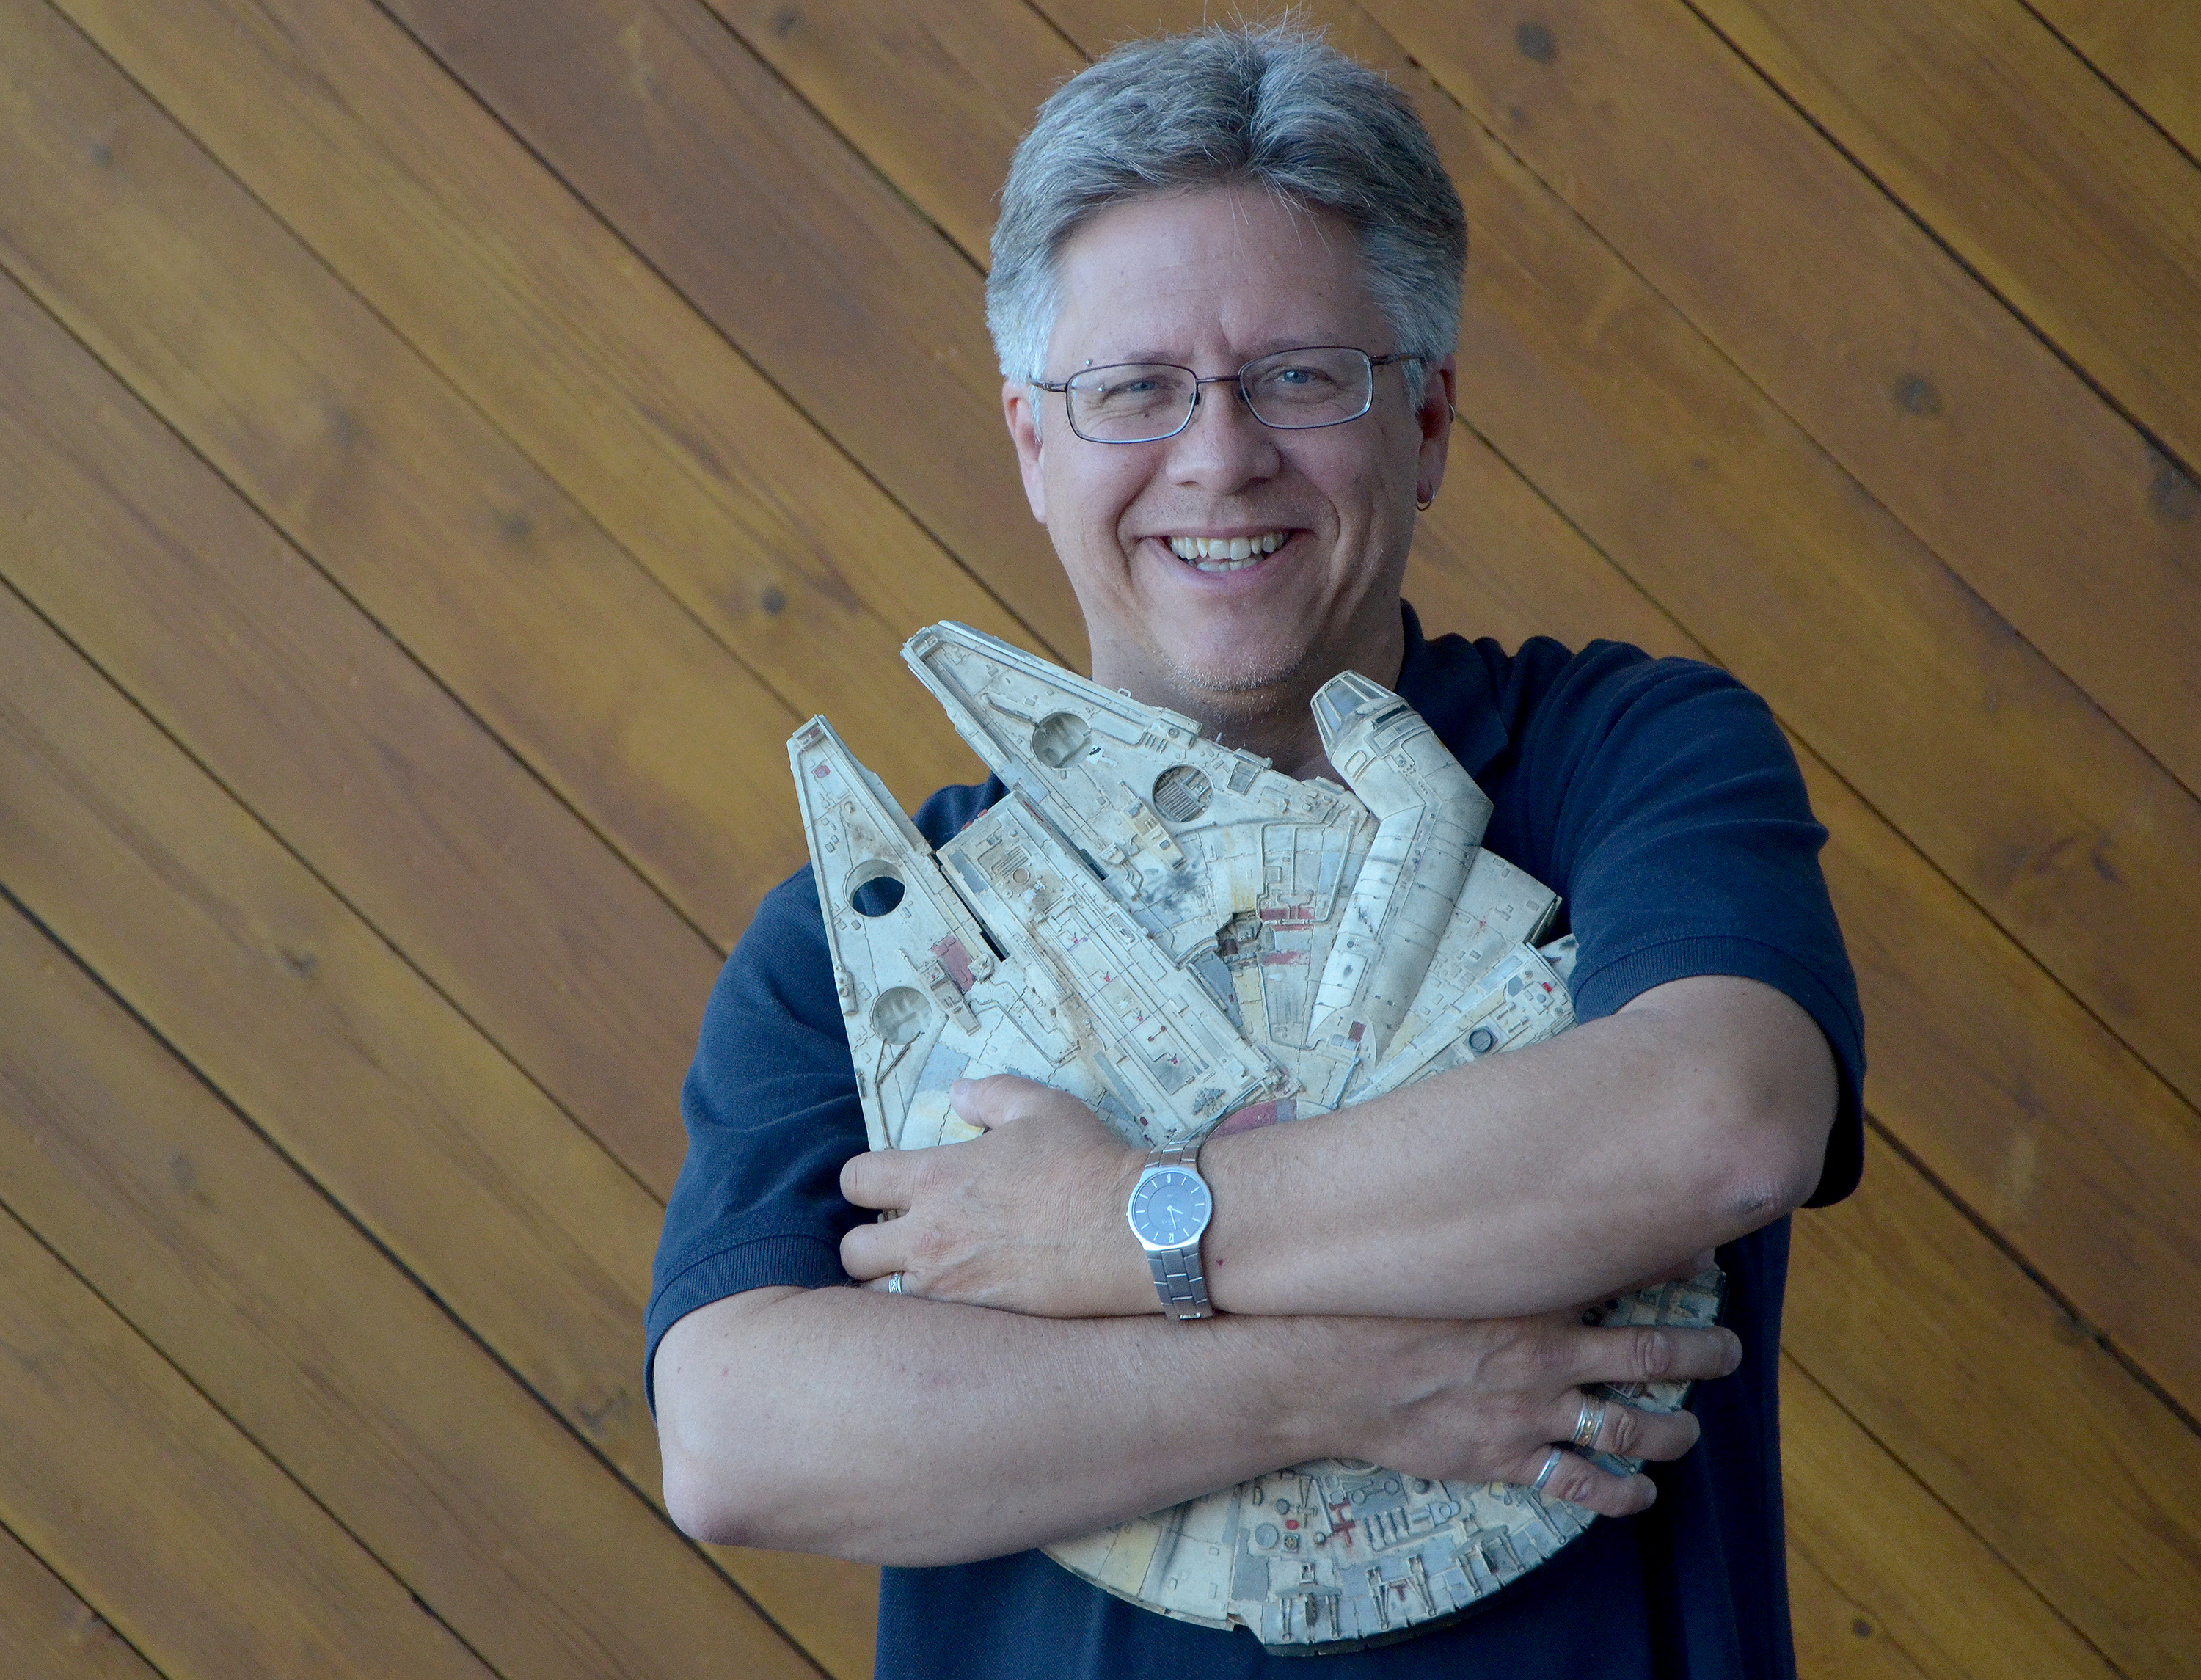 """<p>Thomas Carr, anarchaeologist for History Colorado, with his prizedmodel Millenium Falcon from """"Star Wars"""" at the CPR studios.</p>"""